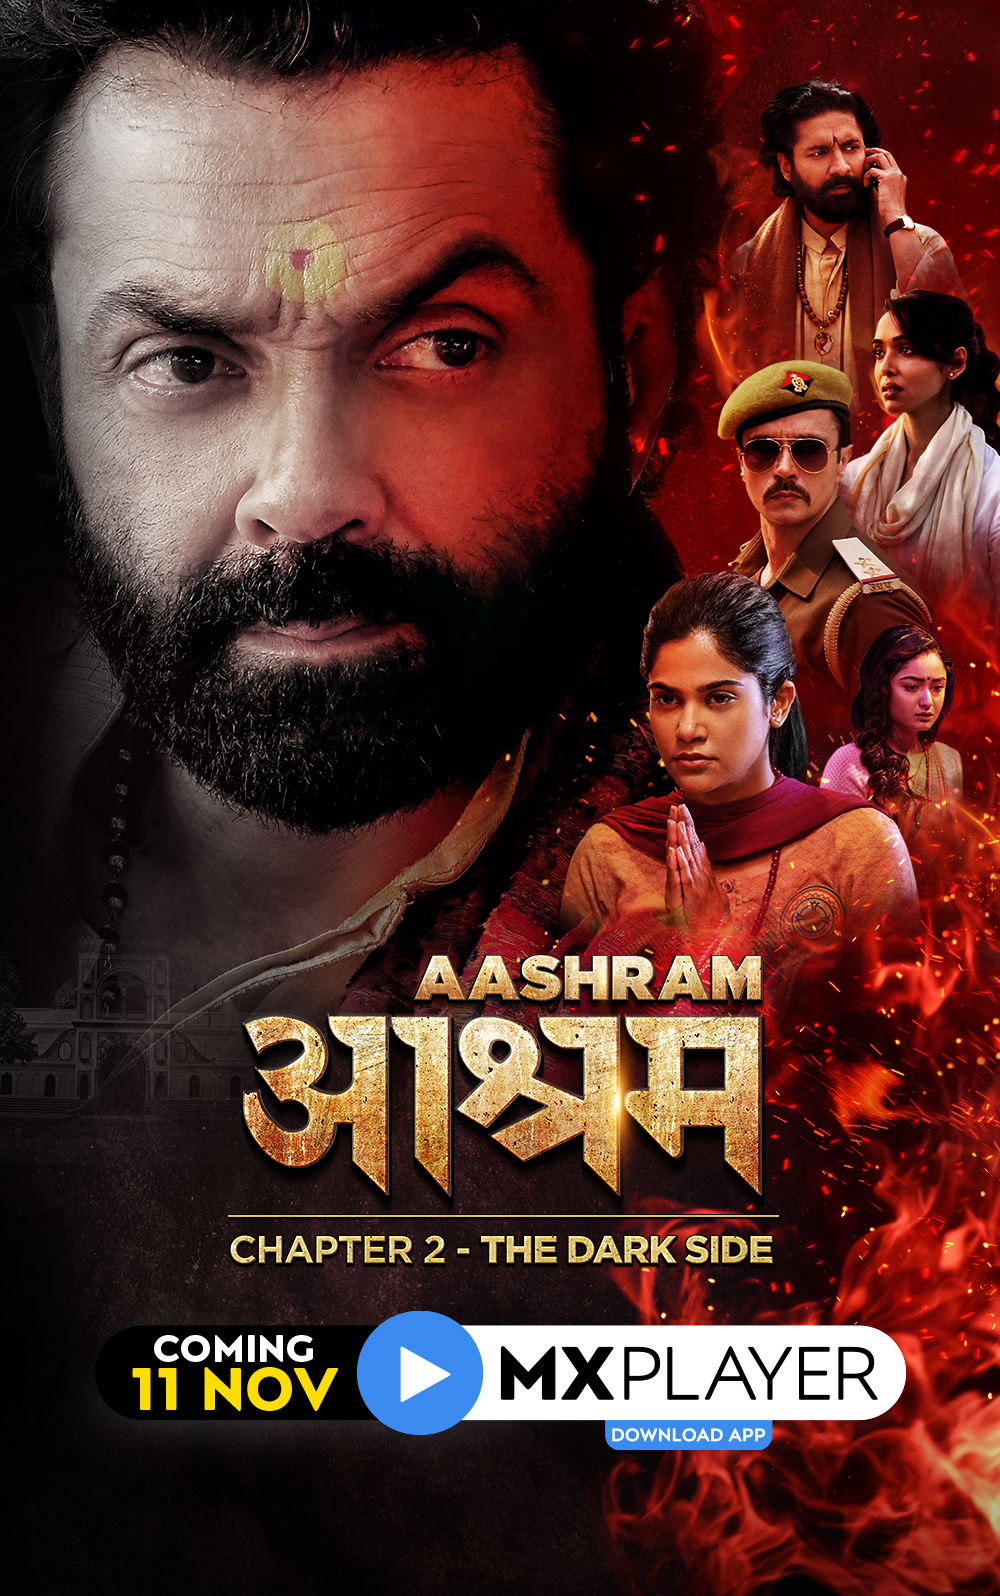 Aashram Chapter 2: The Dark Side 2020 S02 Hindi MX Player Original Complete Web Series 720p HDRip 2420MB Download